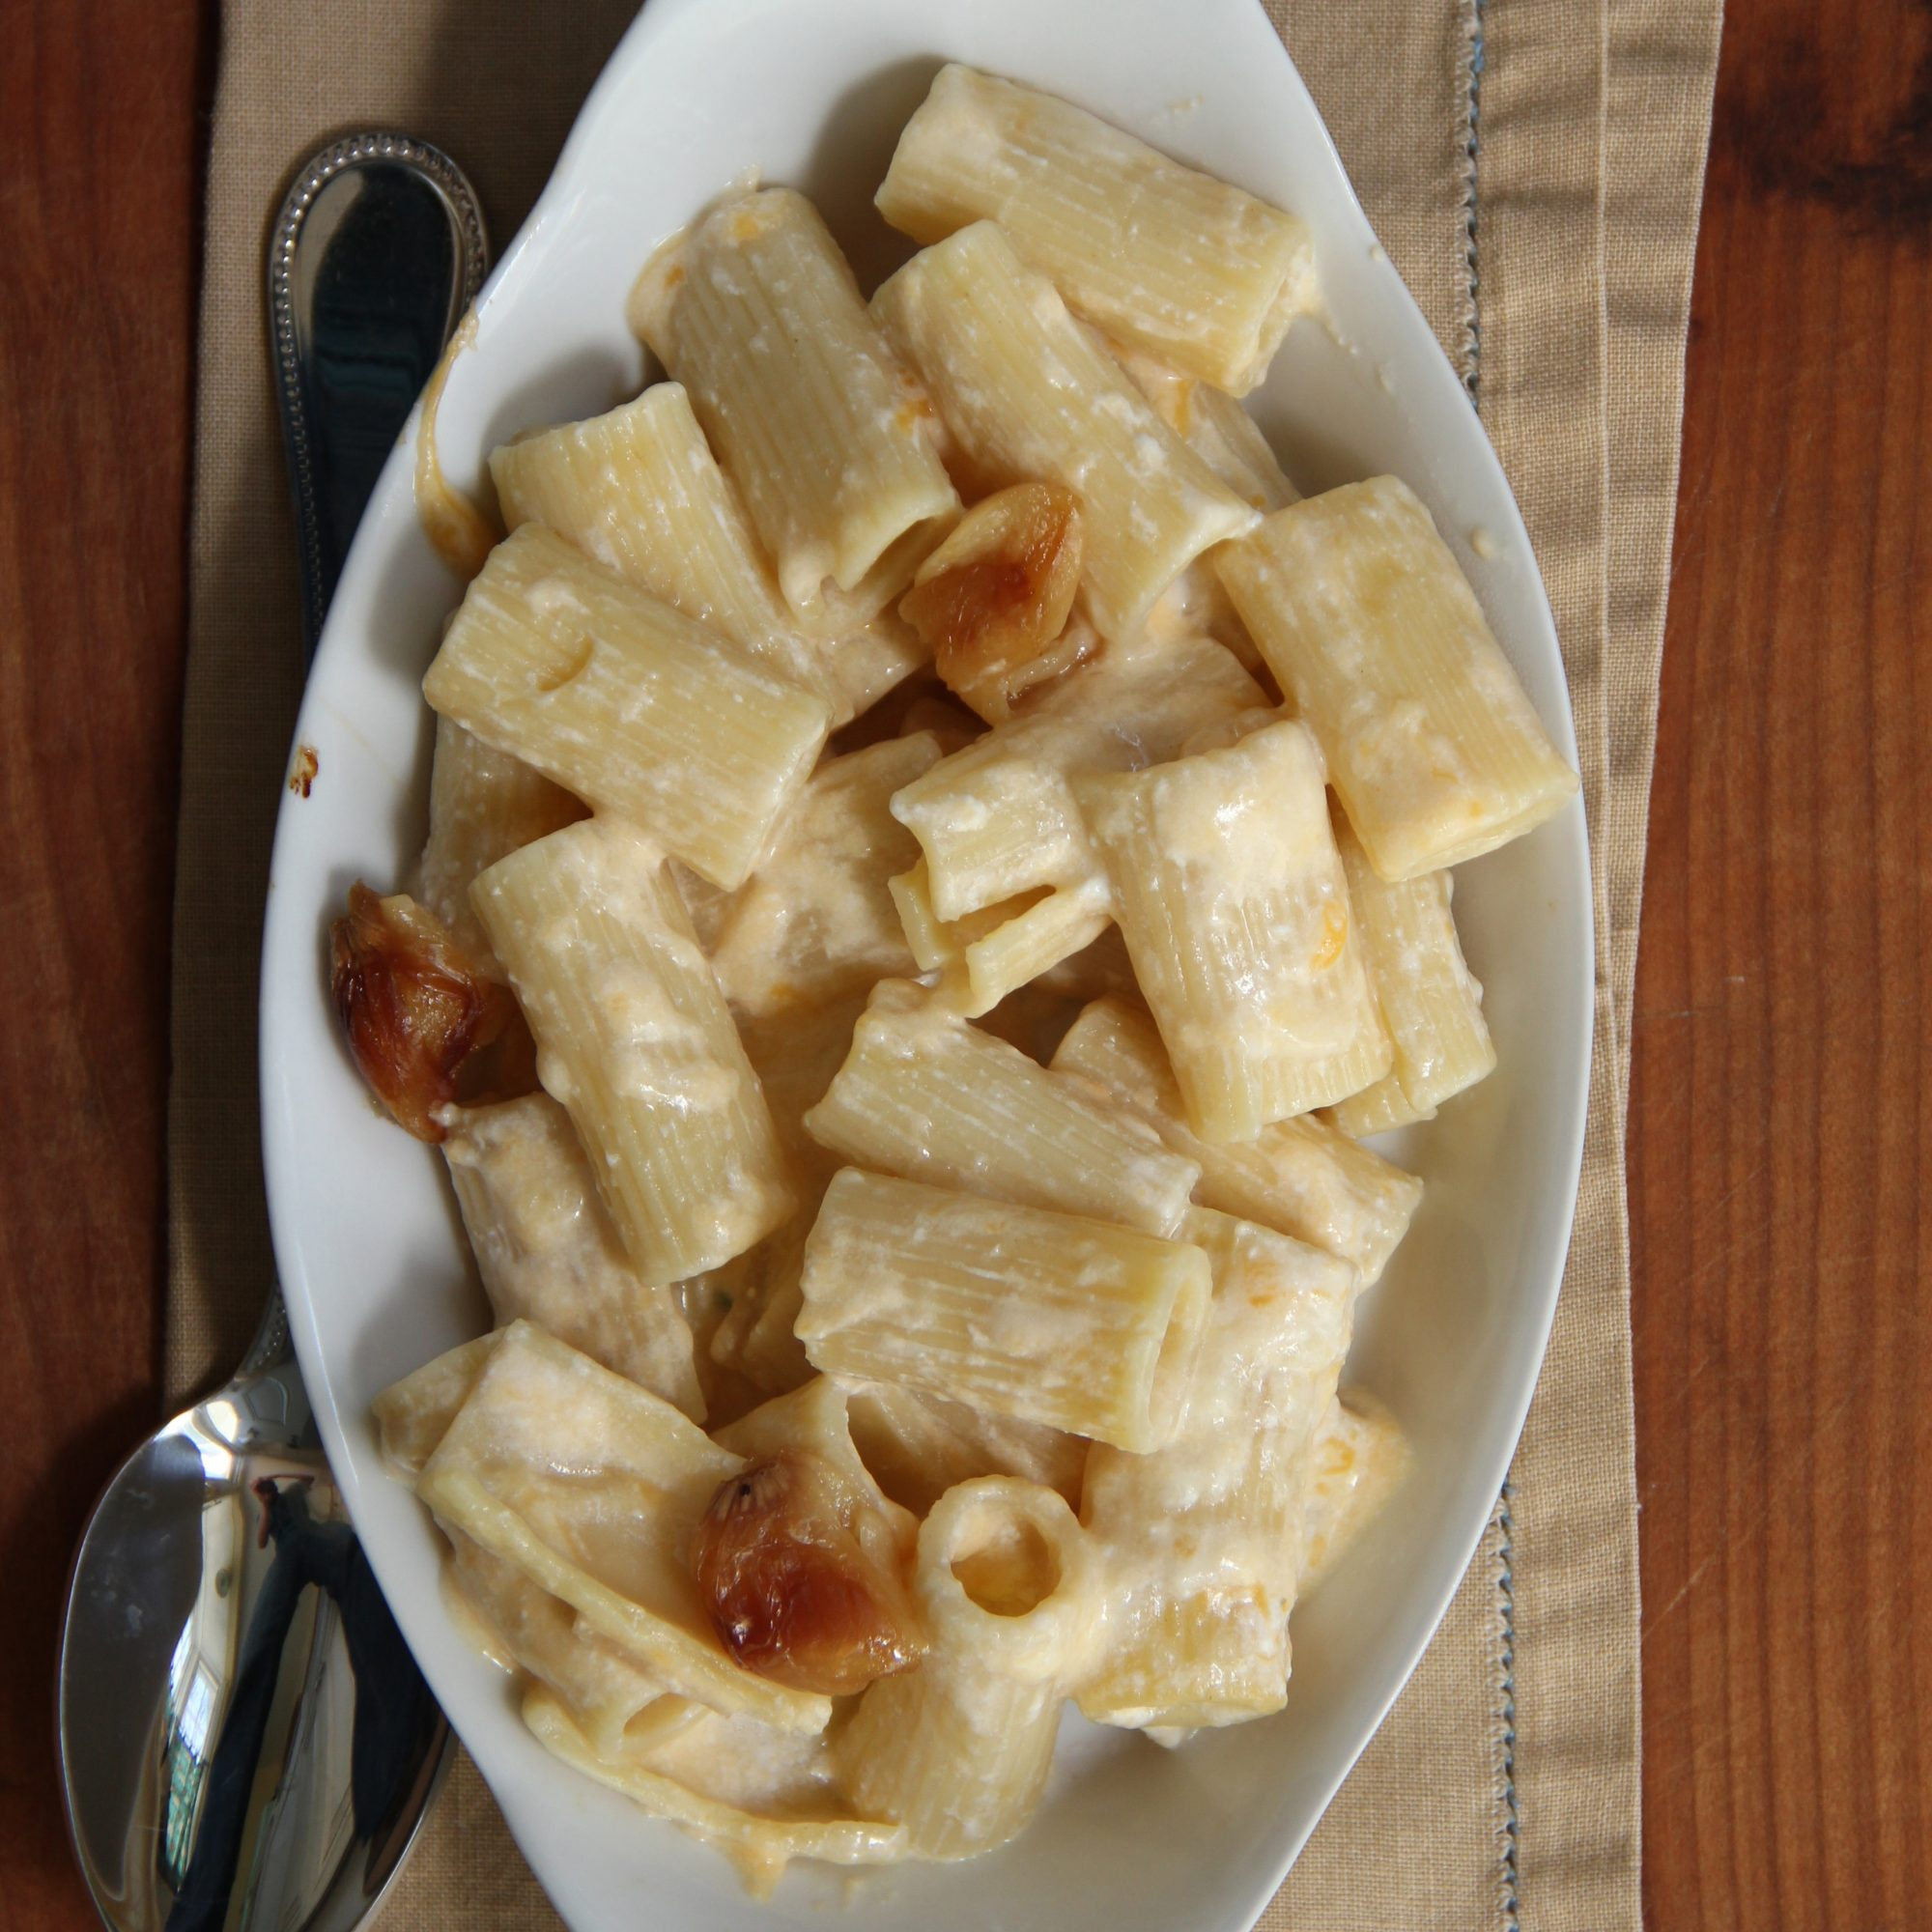 201404-r-roasted-garlic-mac-n-cheese.jpg